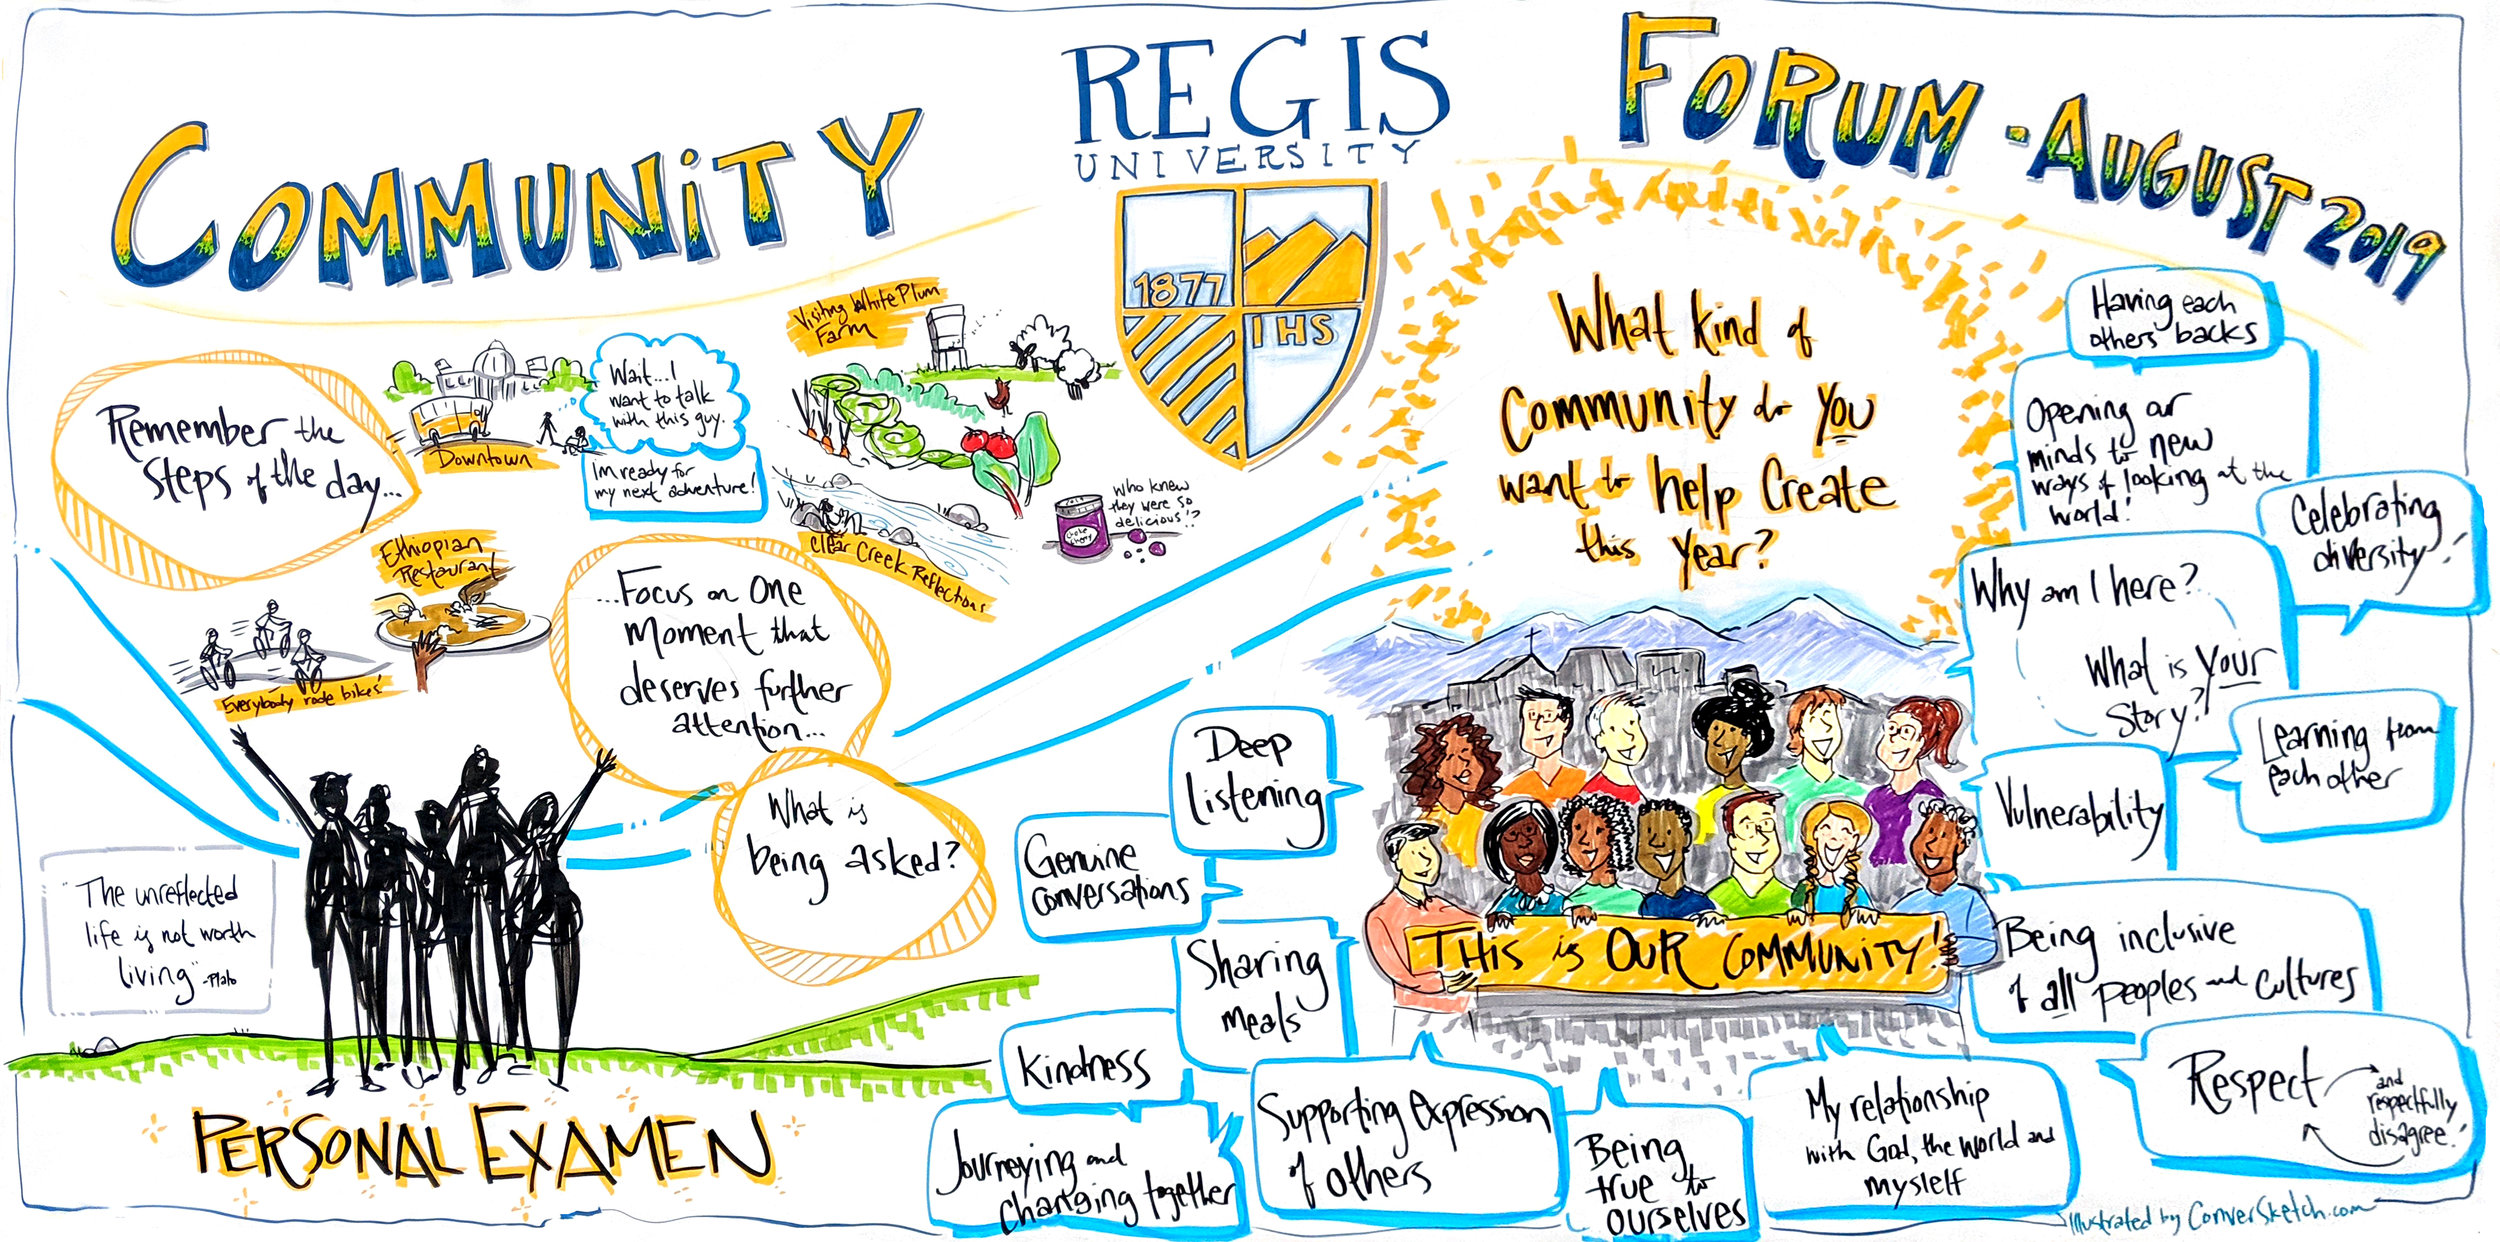 Denver, CO:  For the closing session of Regis University's Orientation Forum. New students reflected on a day experiencing different parts of the Denver community, and shared what kind of community THEY wanted to create together over the next year…and beyond!